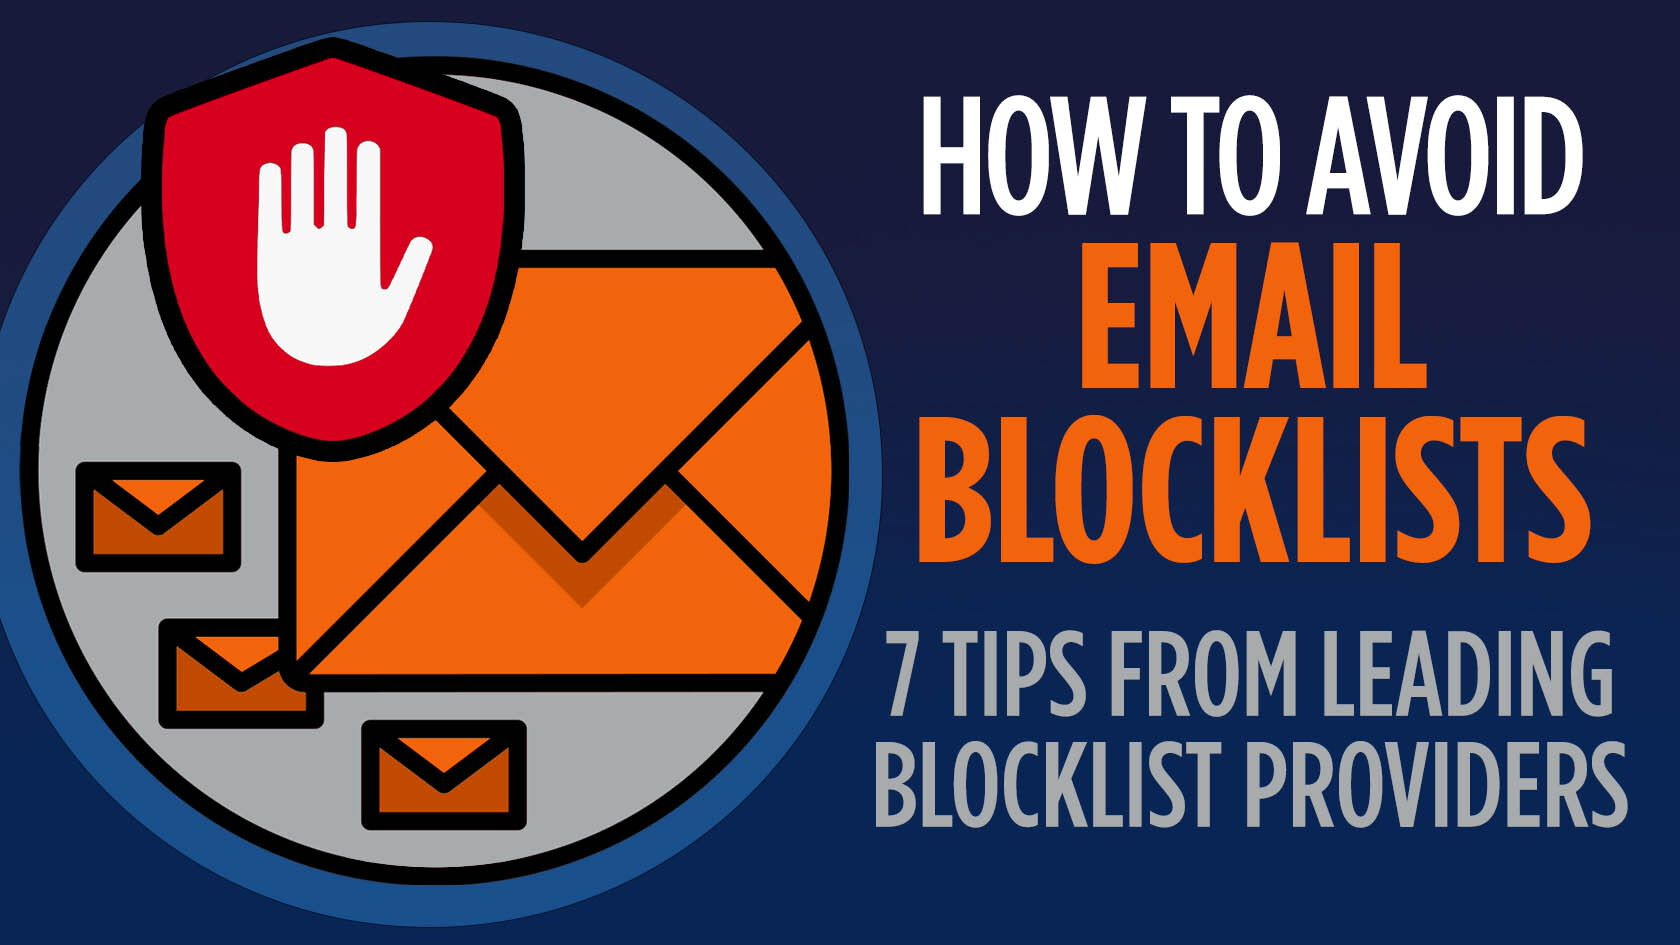 avoid email blocklists